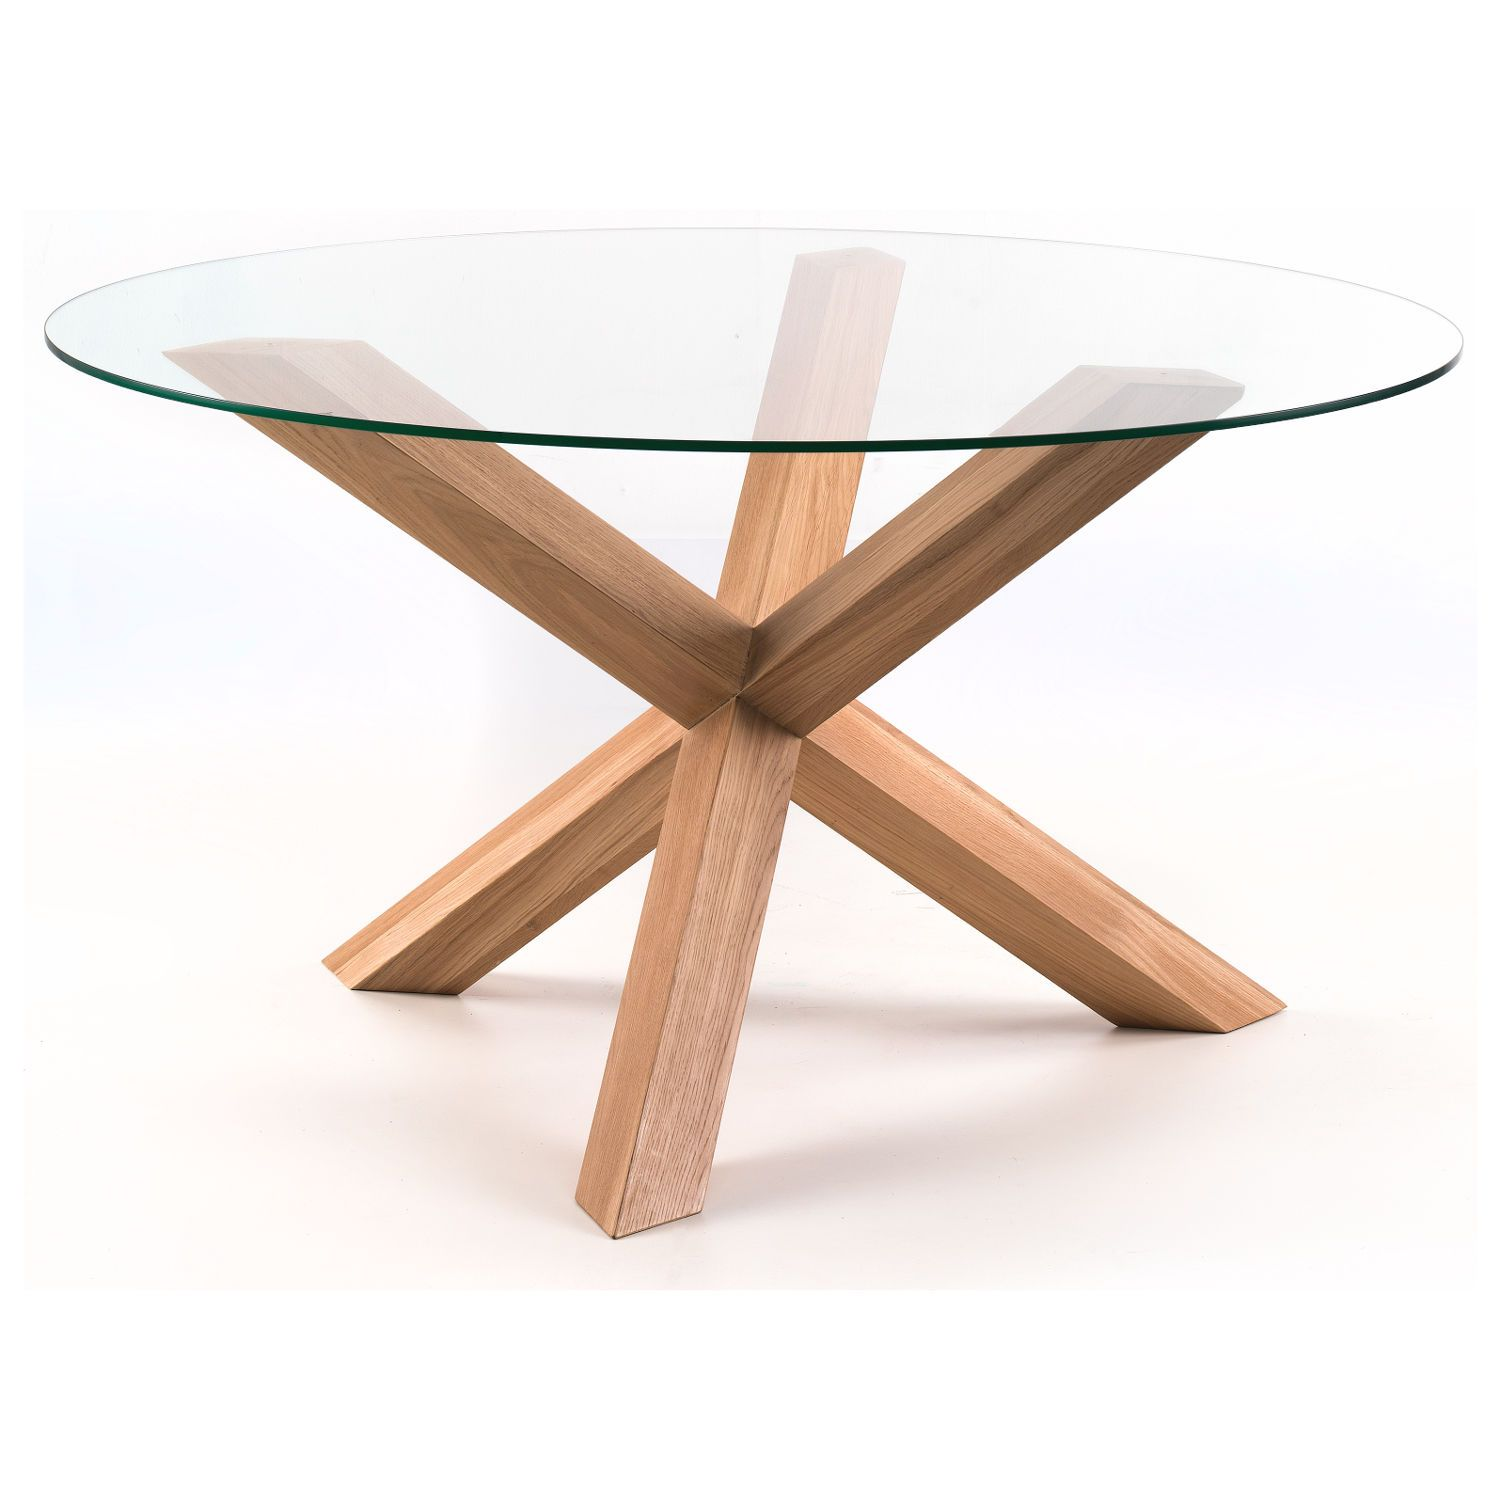 Tfw 138cm Round Glass Dining Table With Oak Pedestal Next Day